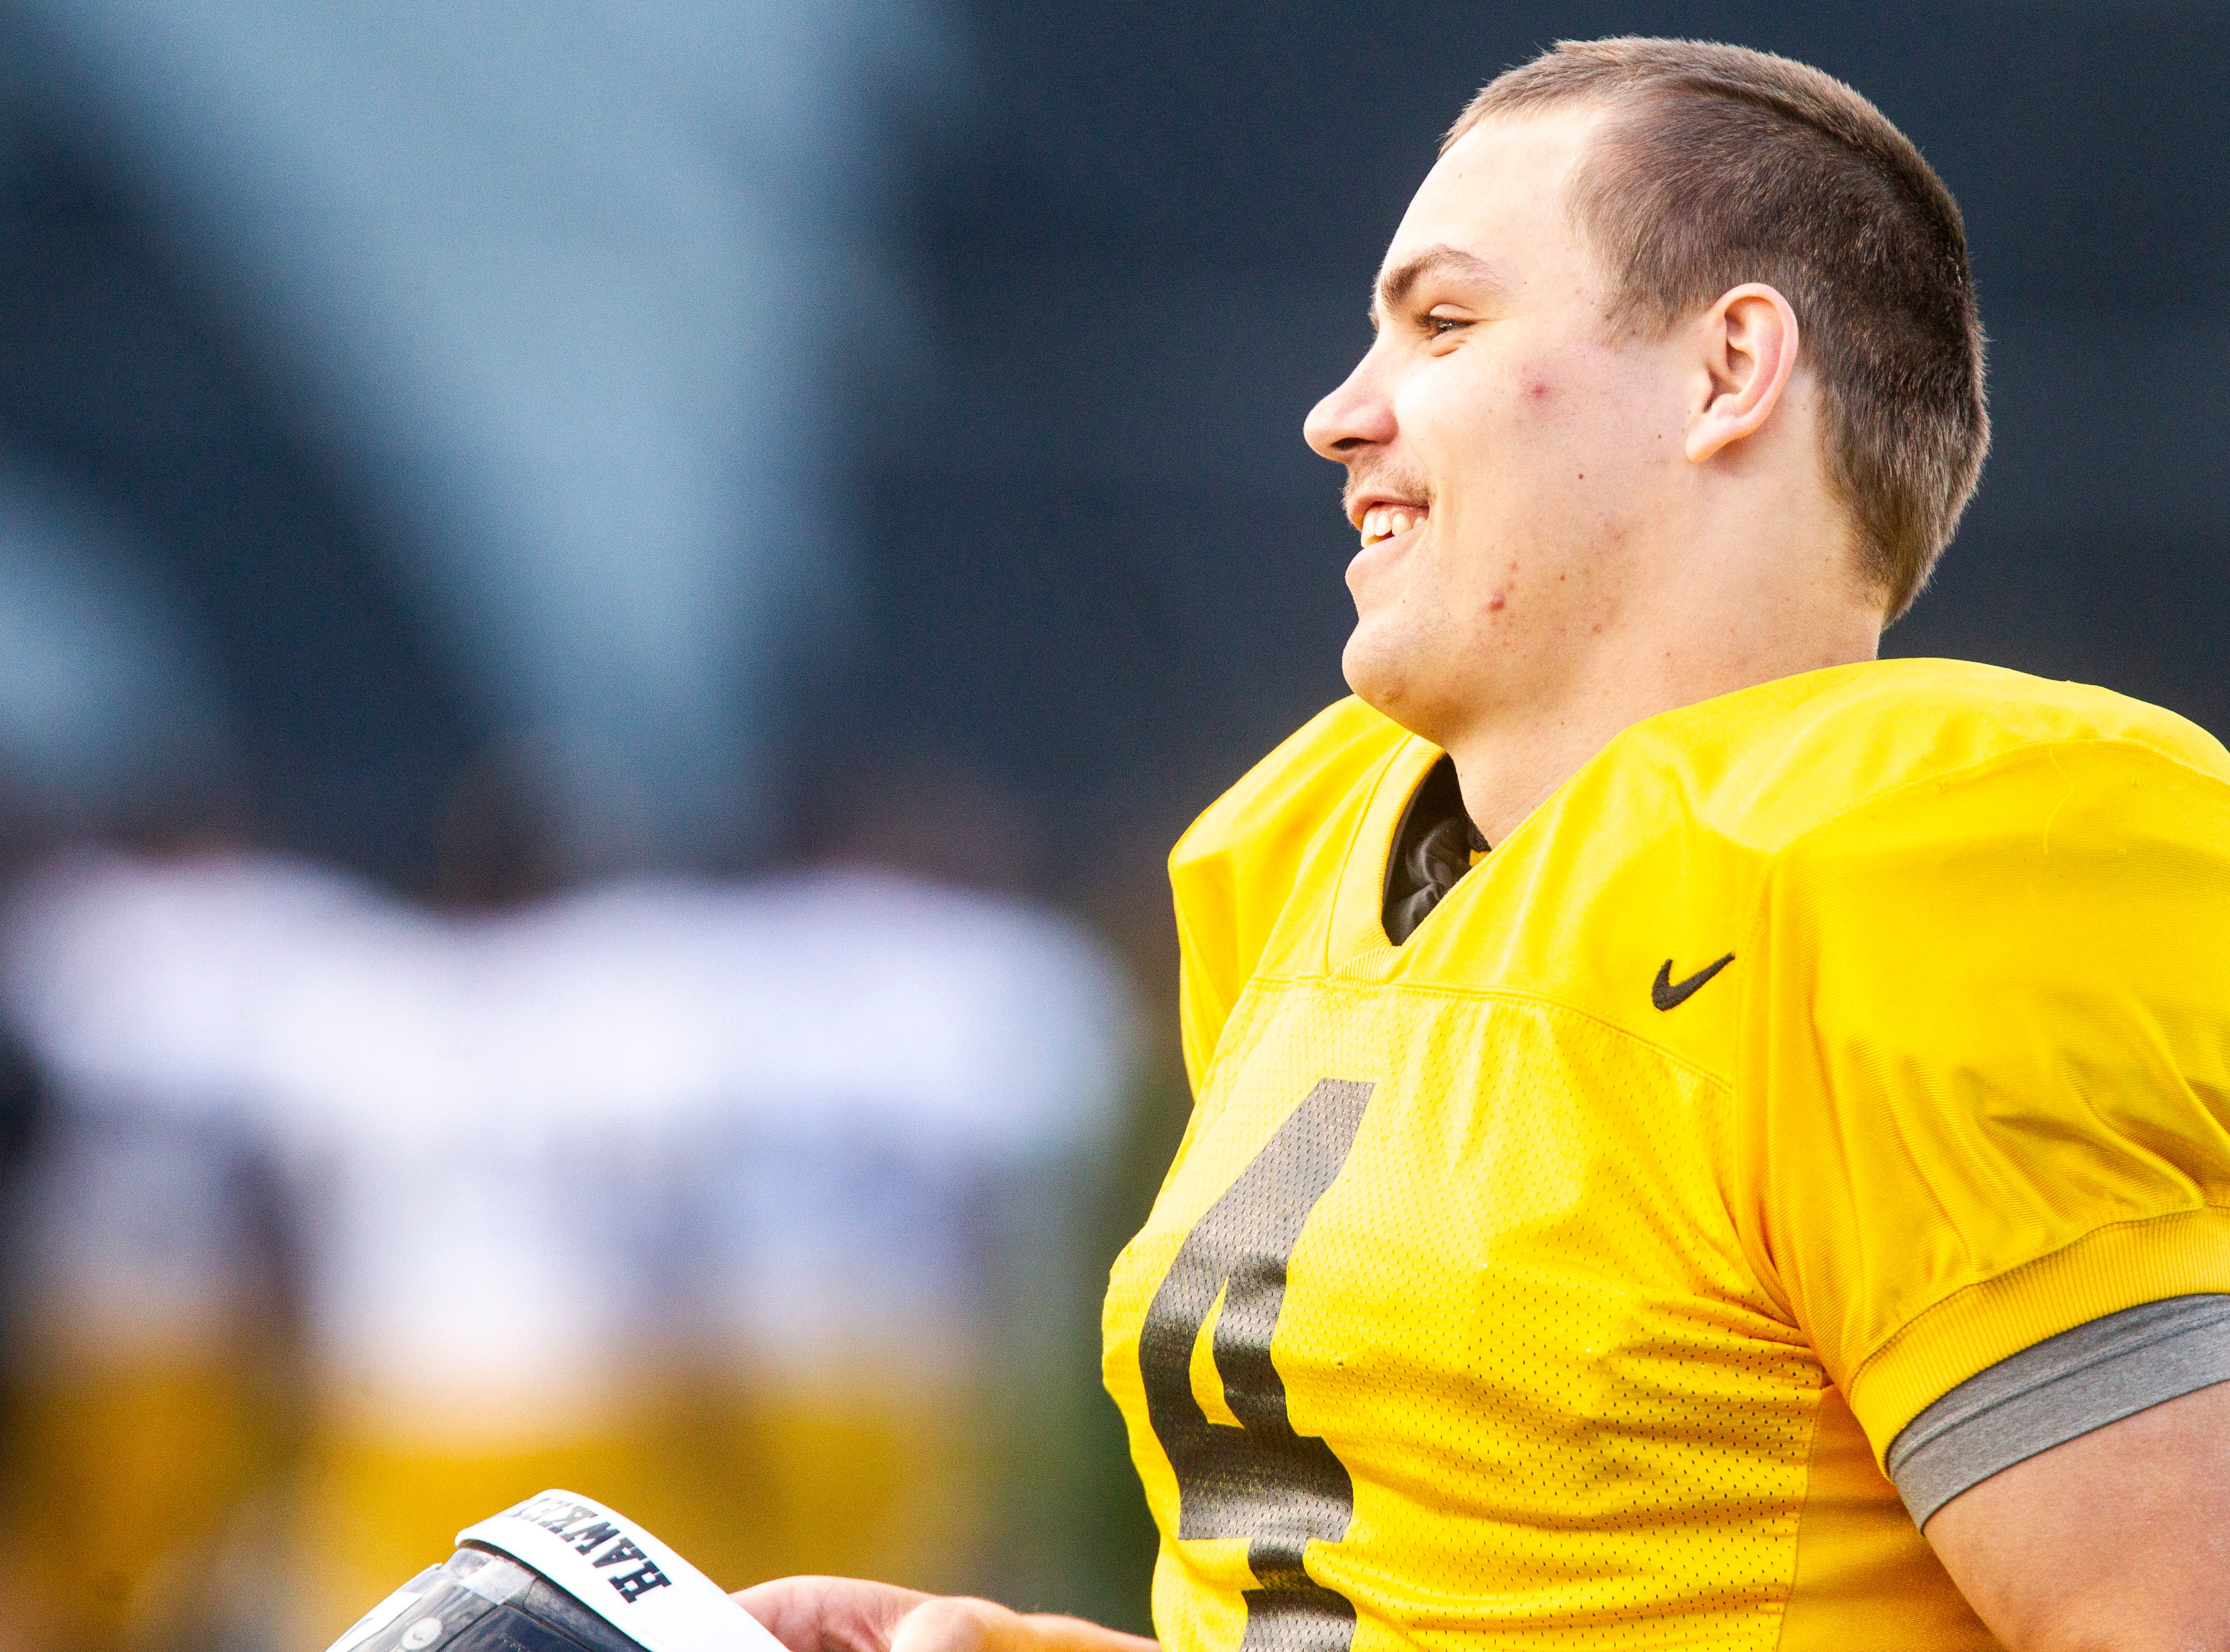 Iowa quarterback Nate Stanley smiles after the final spring football practice, Friday, April 26, 2019, at the University of Iowa outdoor practice facility in Iowa City, Iowa.